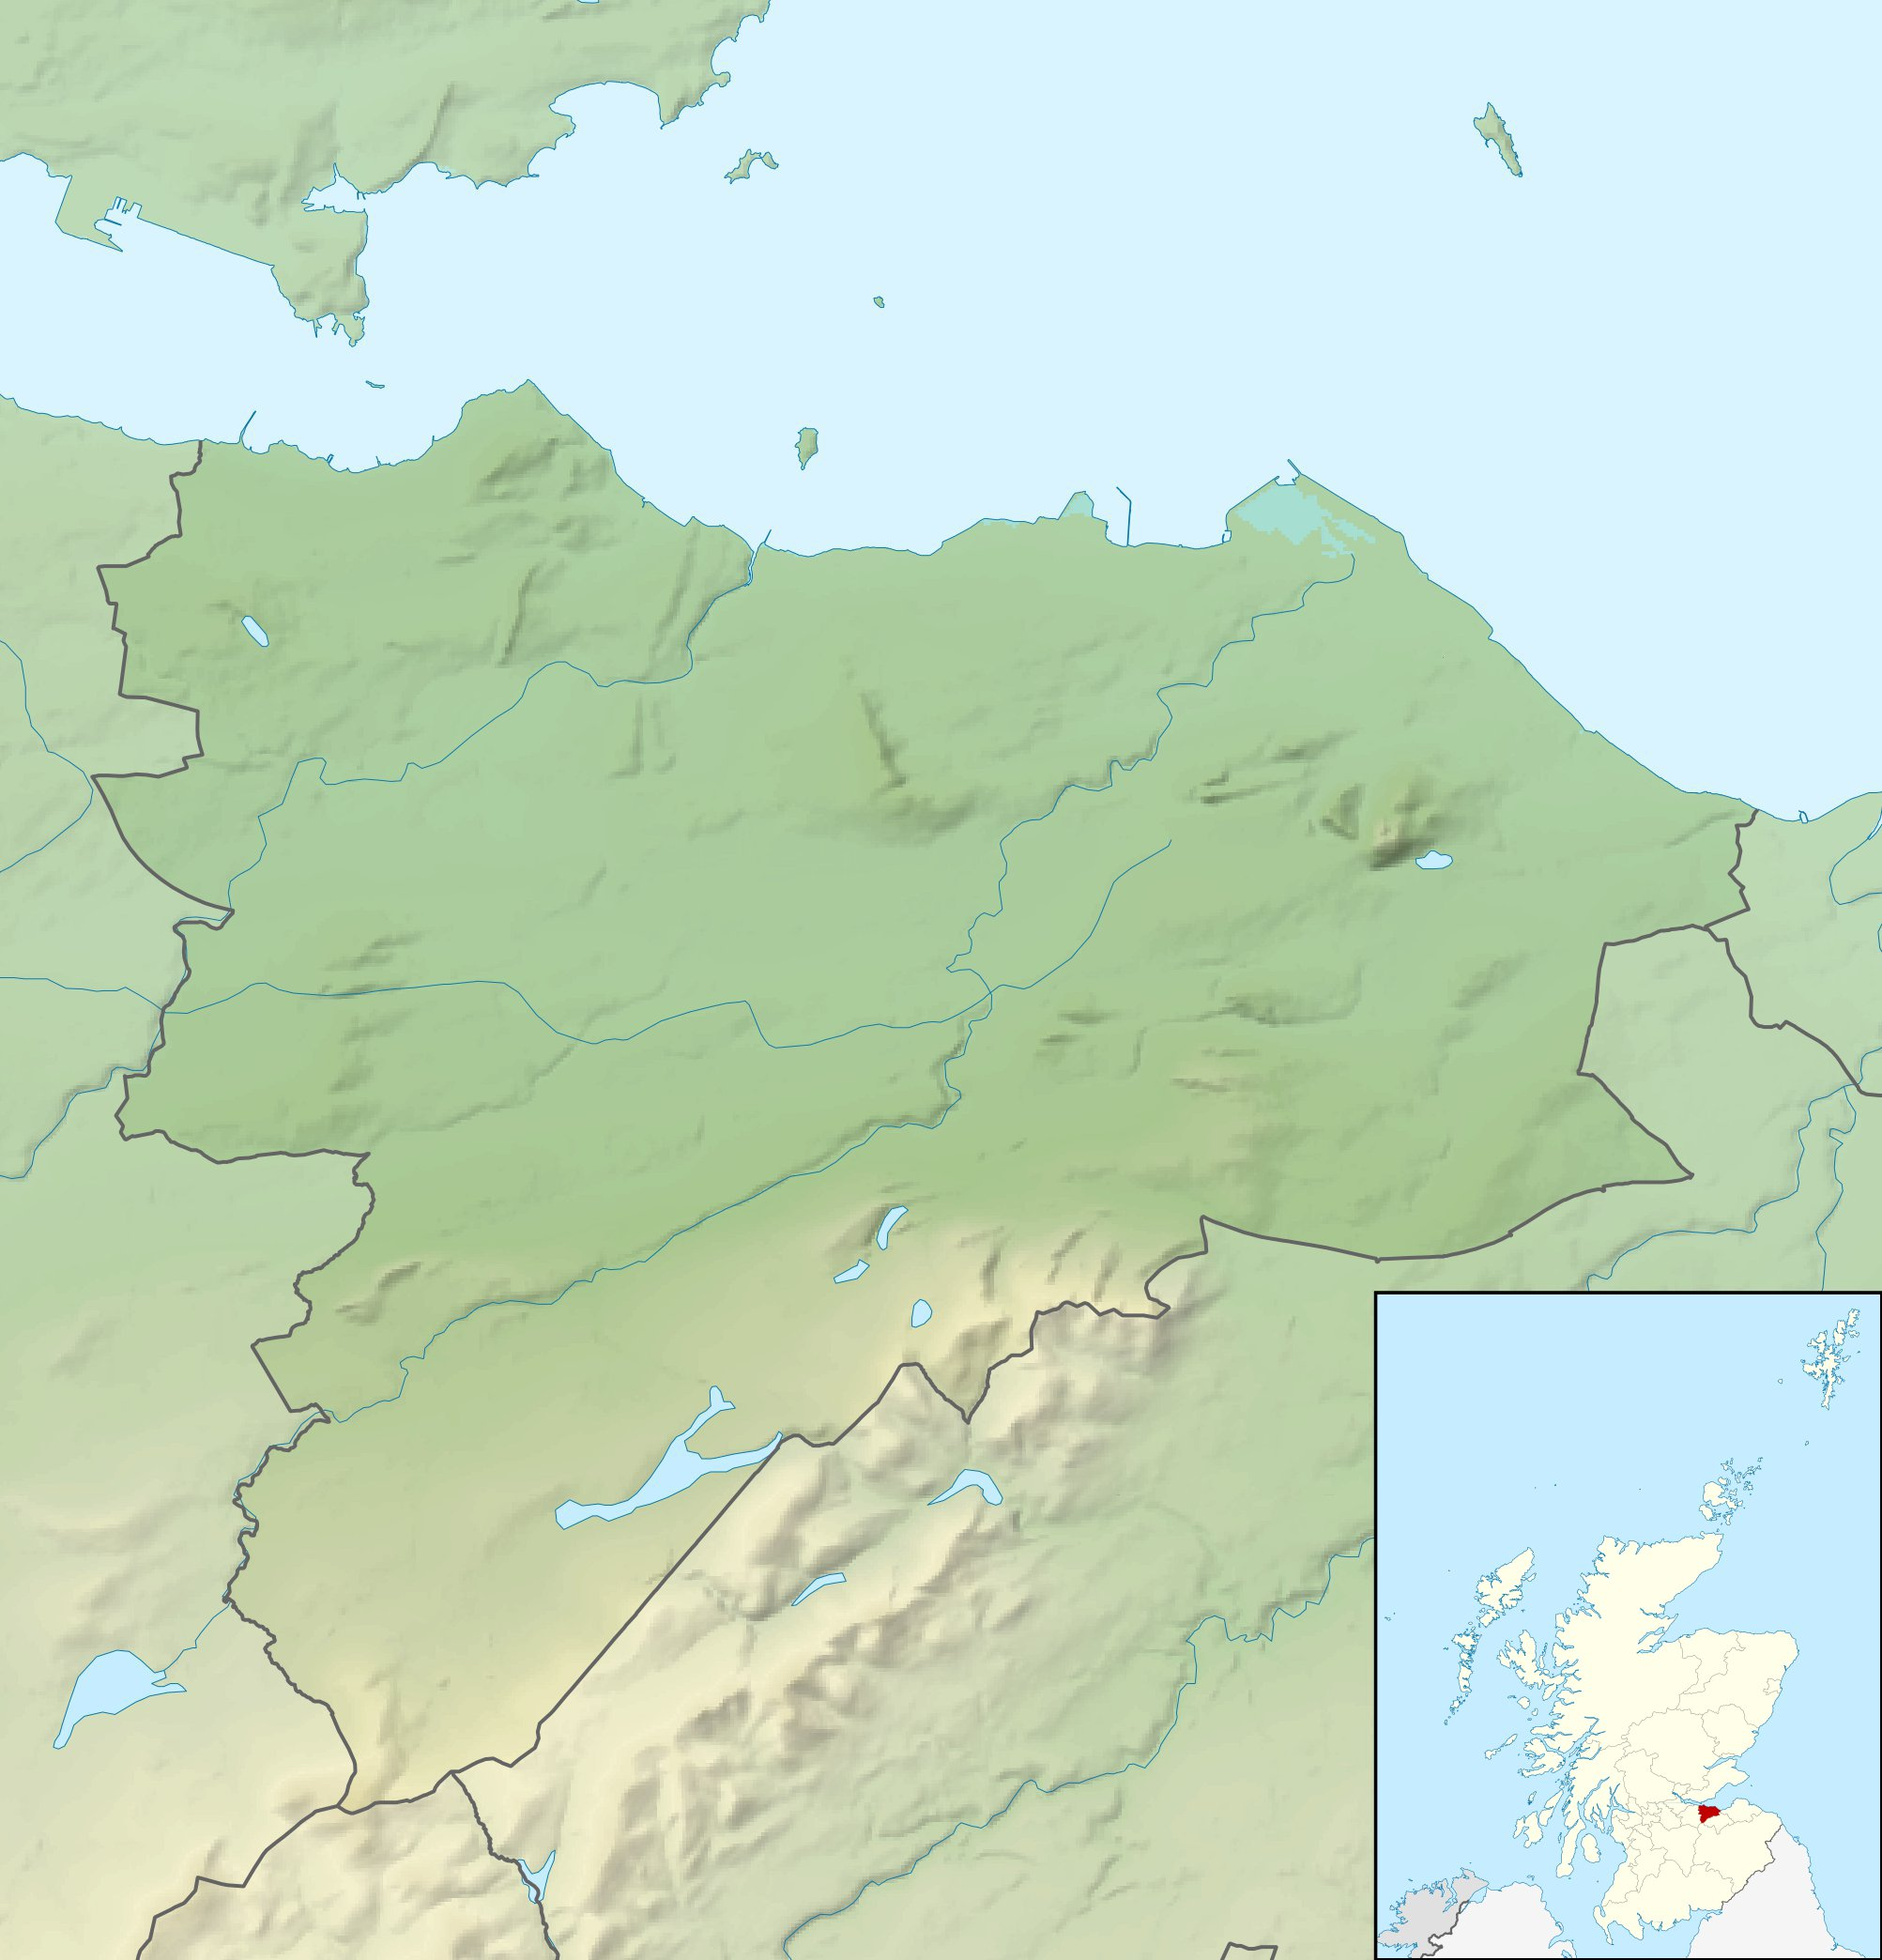 FileEdinburgh UK relief location mapjpg Wikimedia Commons